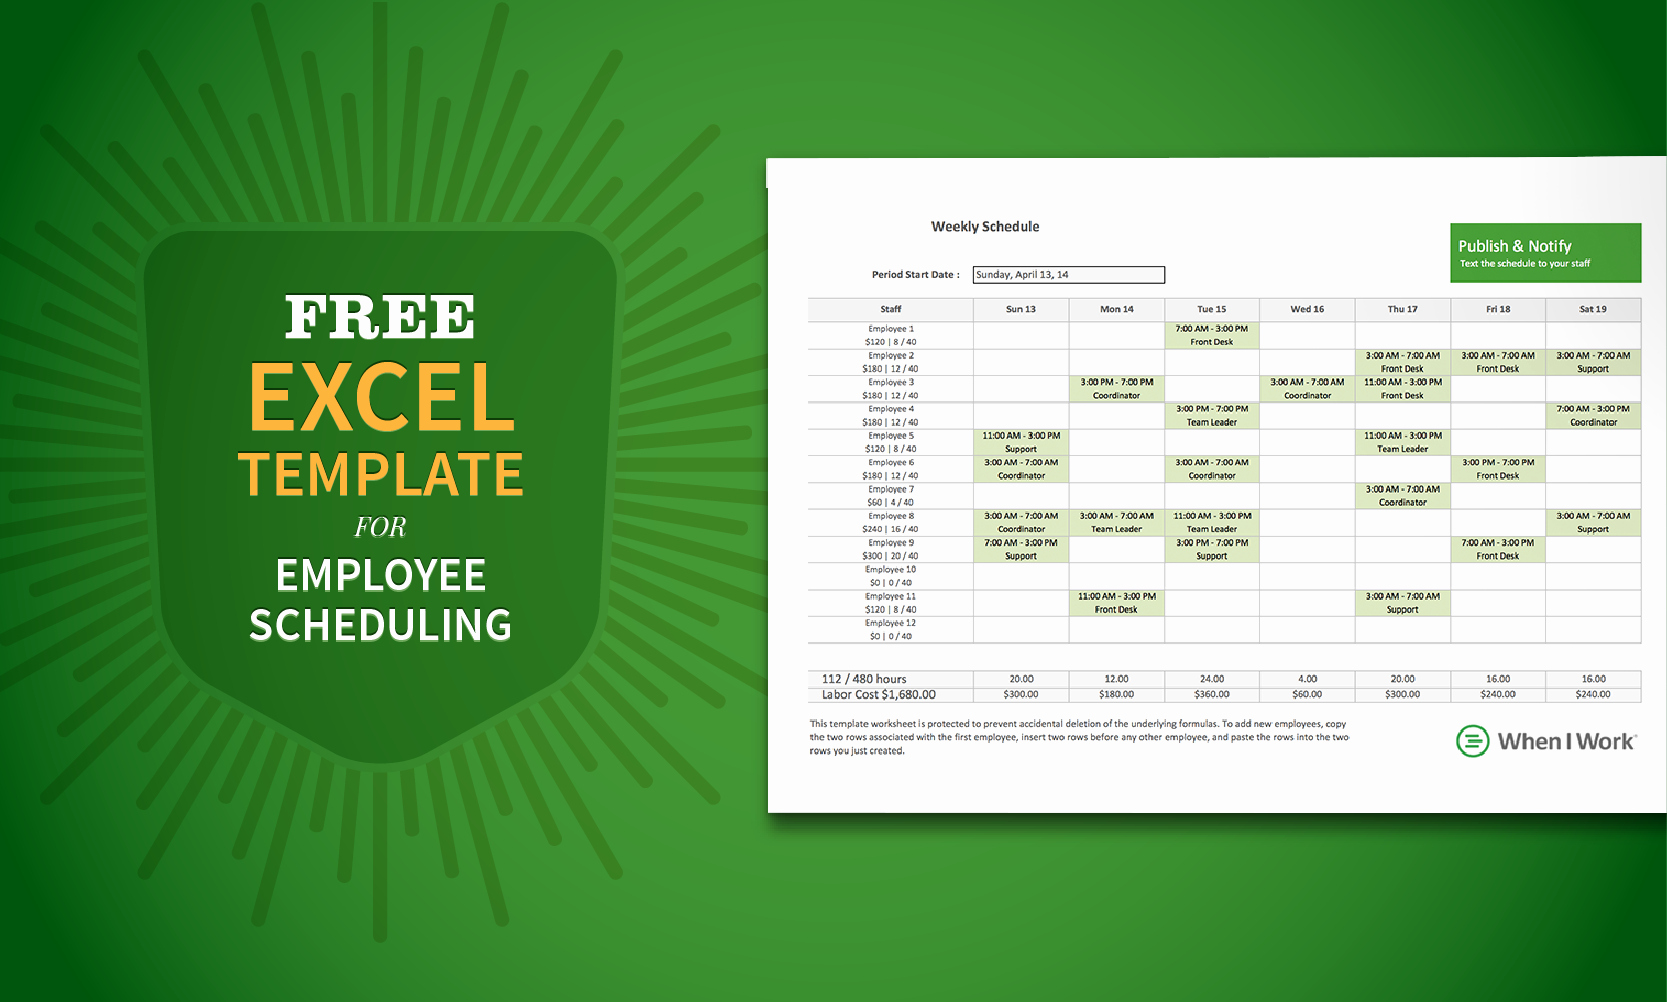 Free Employee Scheduling Template Inspirational Free Excel Template for Employee Scheduling